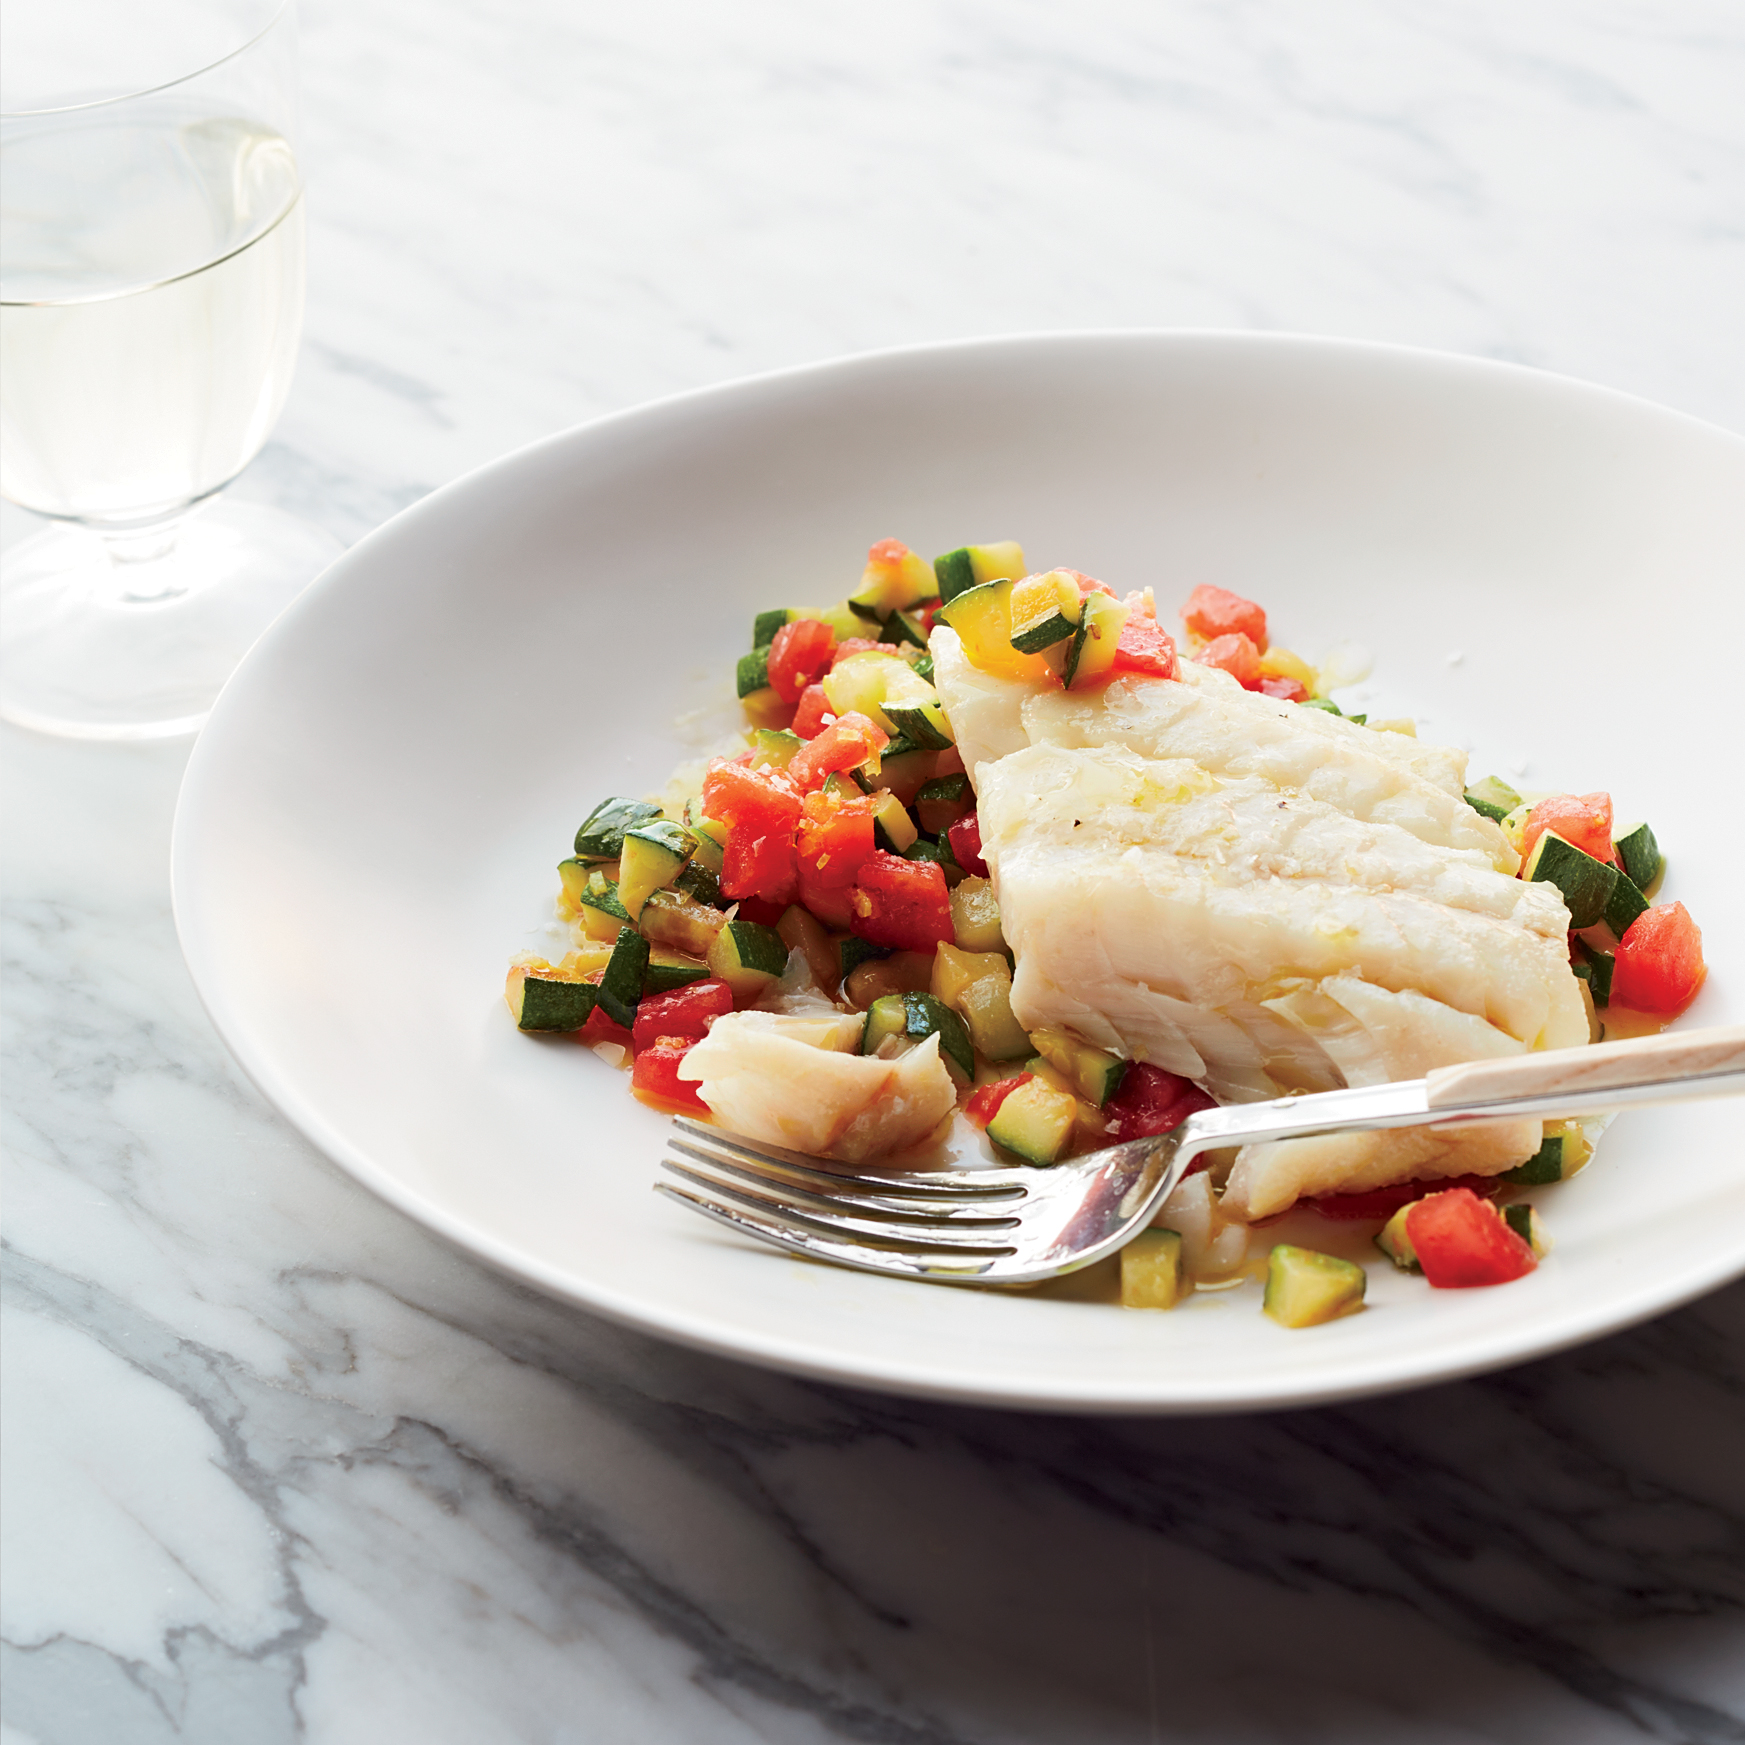 Olive Oil-Poached Hake on Sautéed Zucchini with Tomatoes